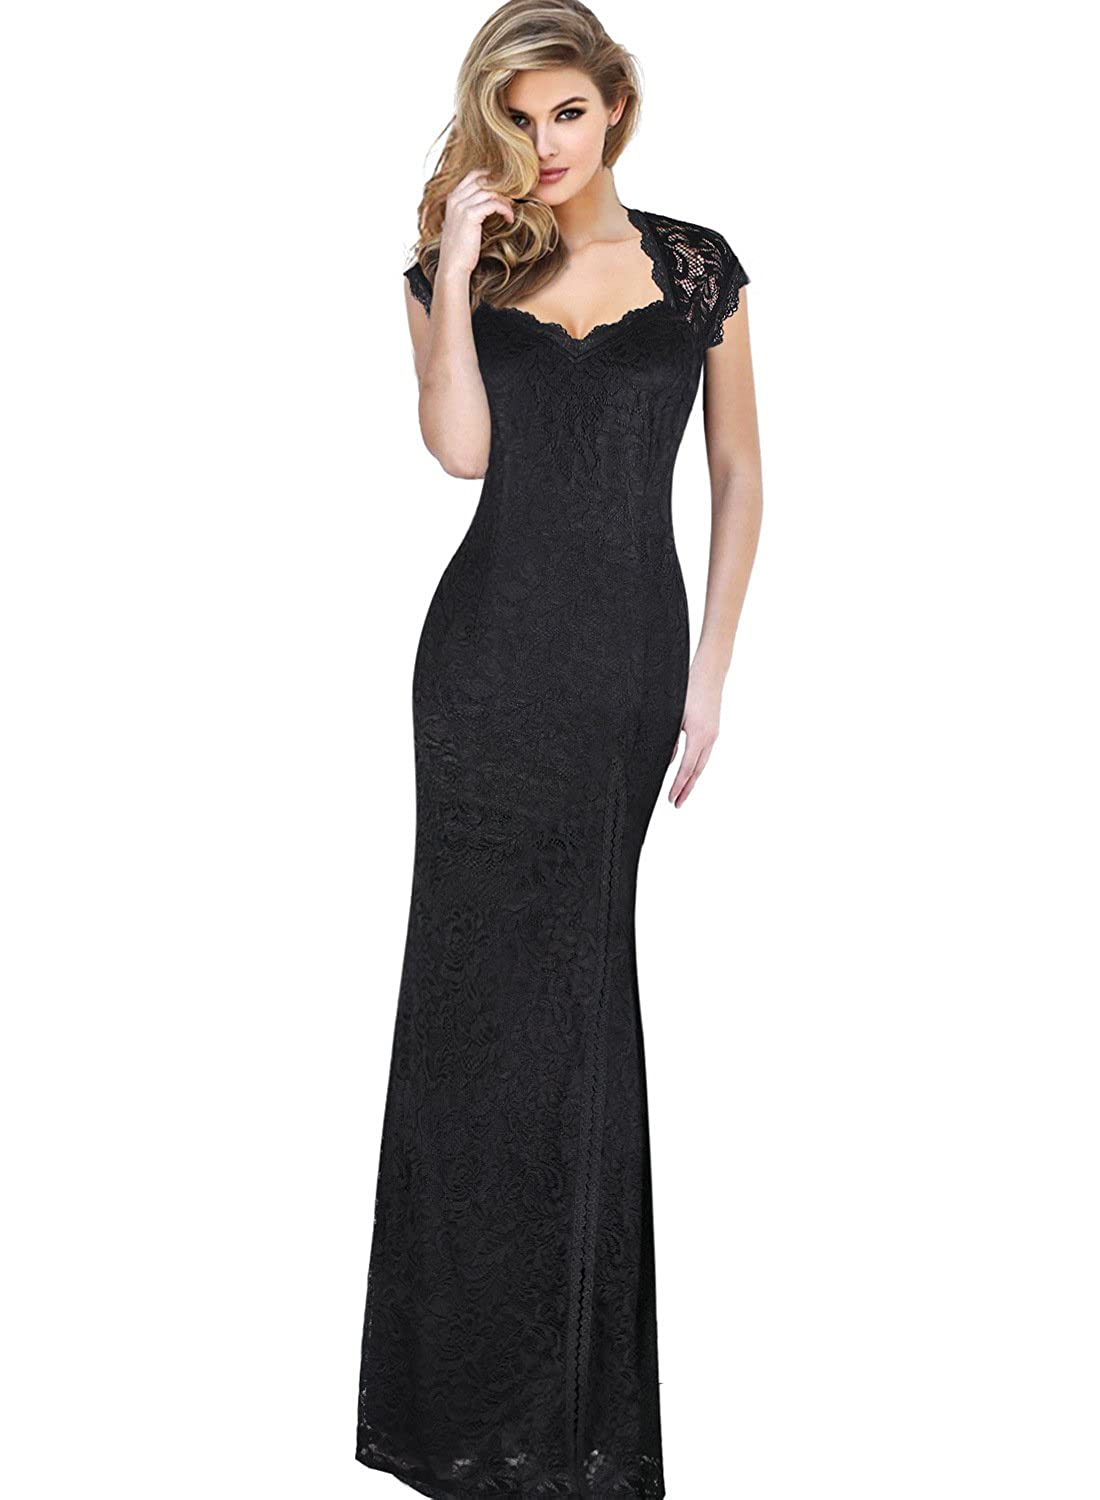 b127e6b23d3d VFSHOW Womens Vintage Floral Full Lace Formal Wedding Party Maxi Dress:  Amazon.co.uk: Clothing